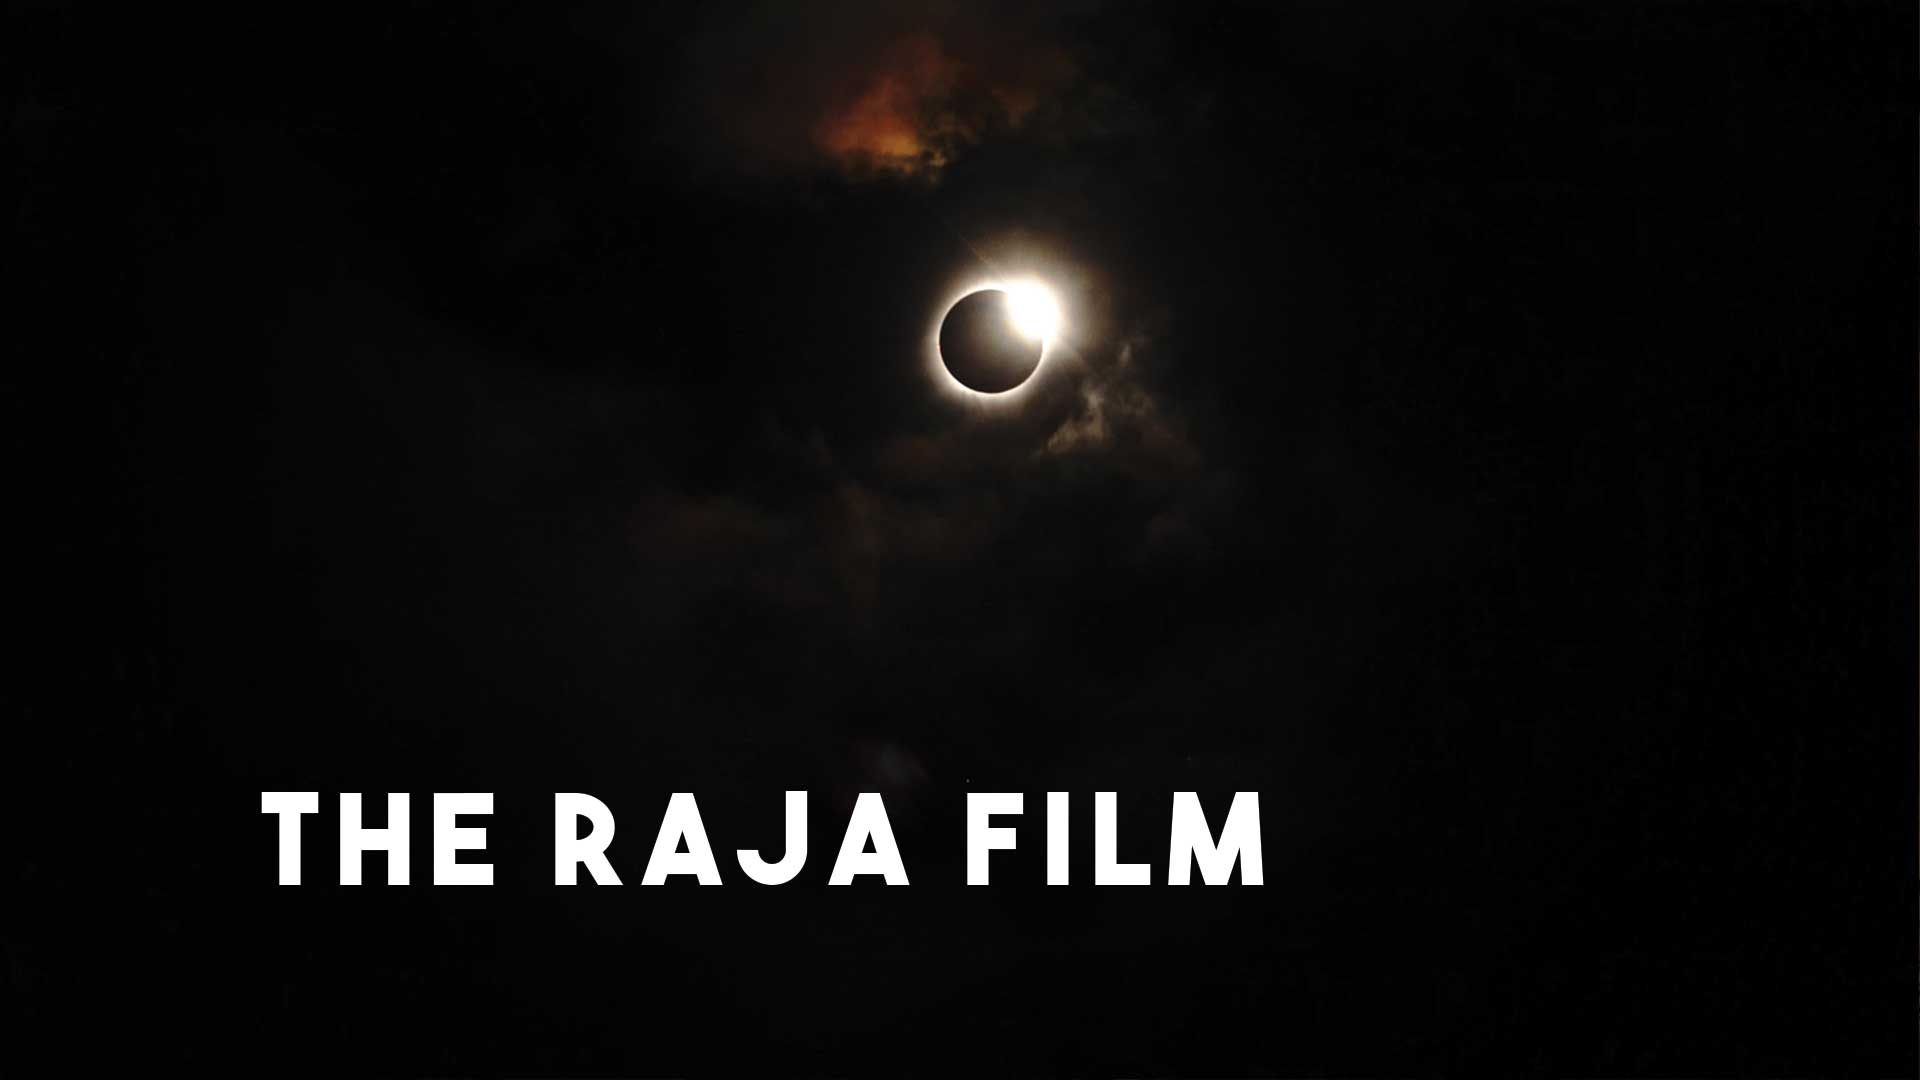 THE RAJA FILM (post-production 2018)